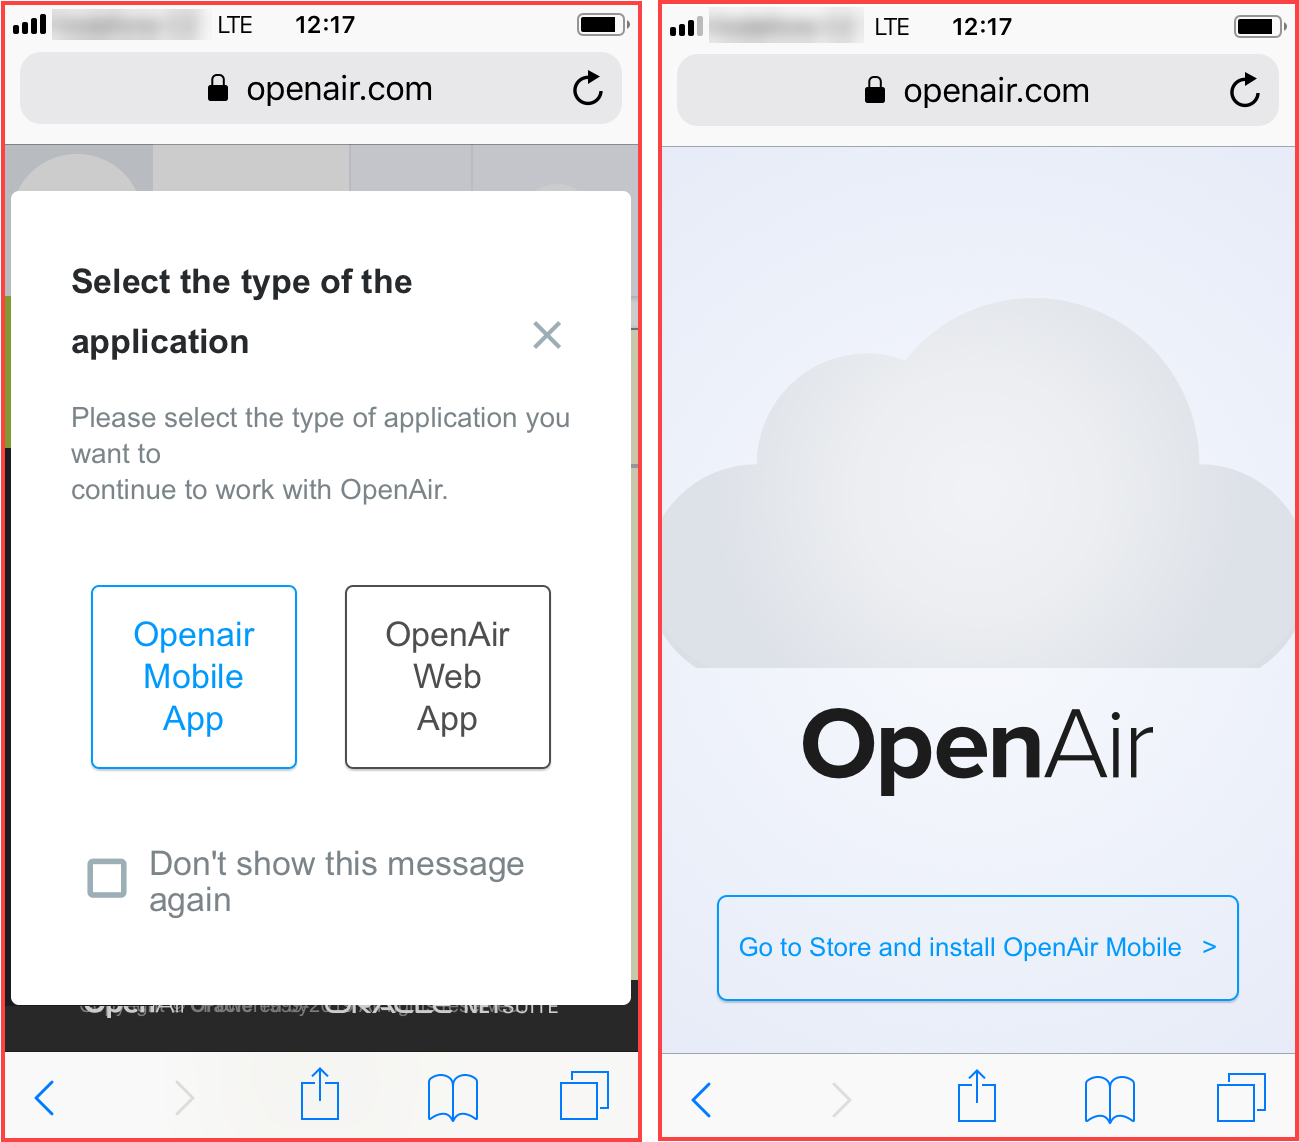 Prompts inviting users to switch to and to download OpenAir Mobile